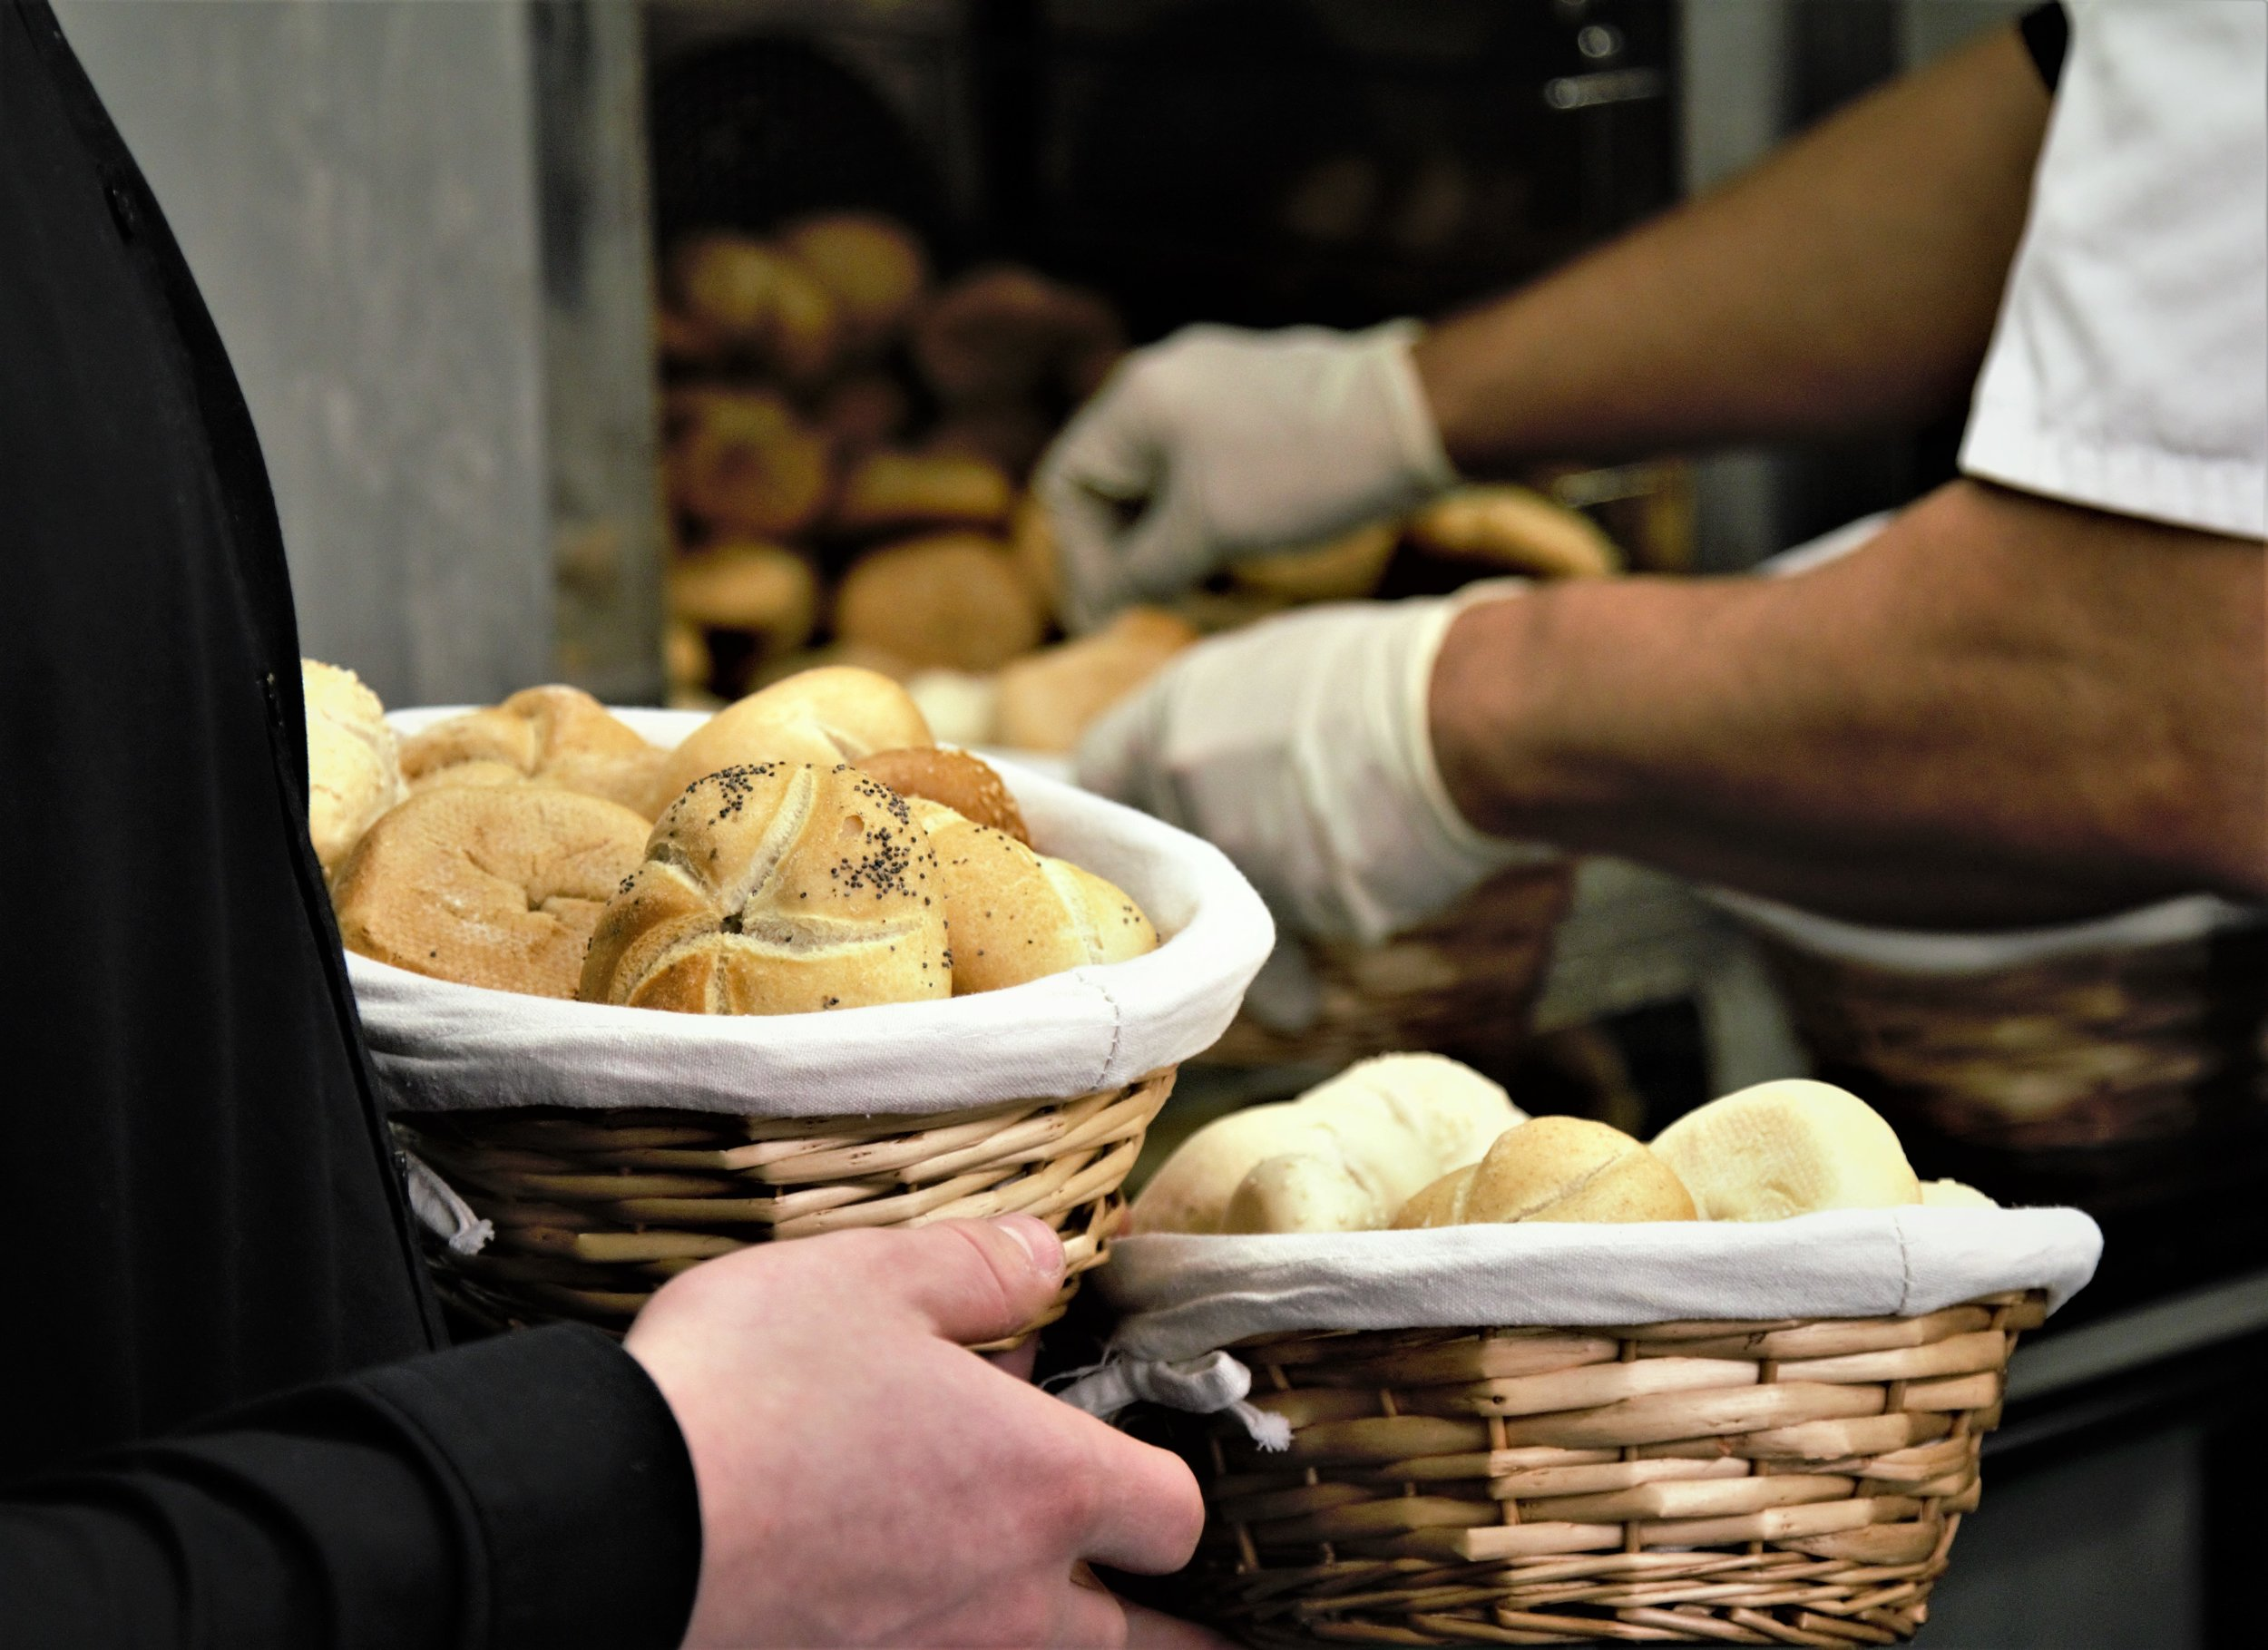 Pick up bread! - We need someone to collect bread from a bakery in San Marcos Sunday nights. Email bdetrich@gracechurchsd.org.